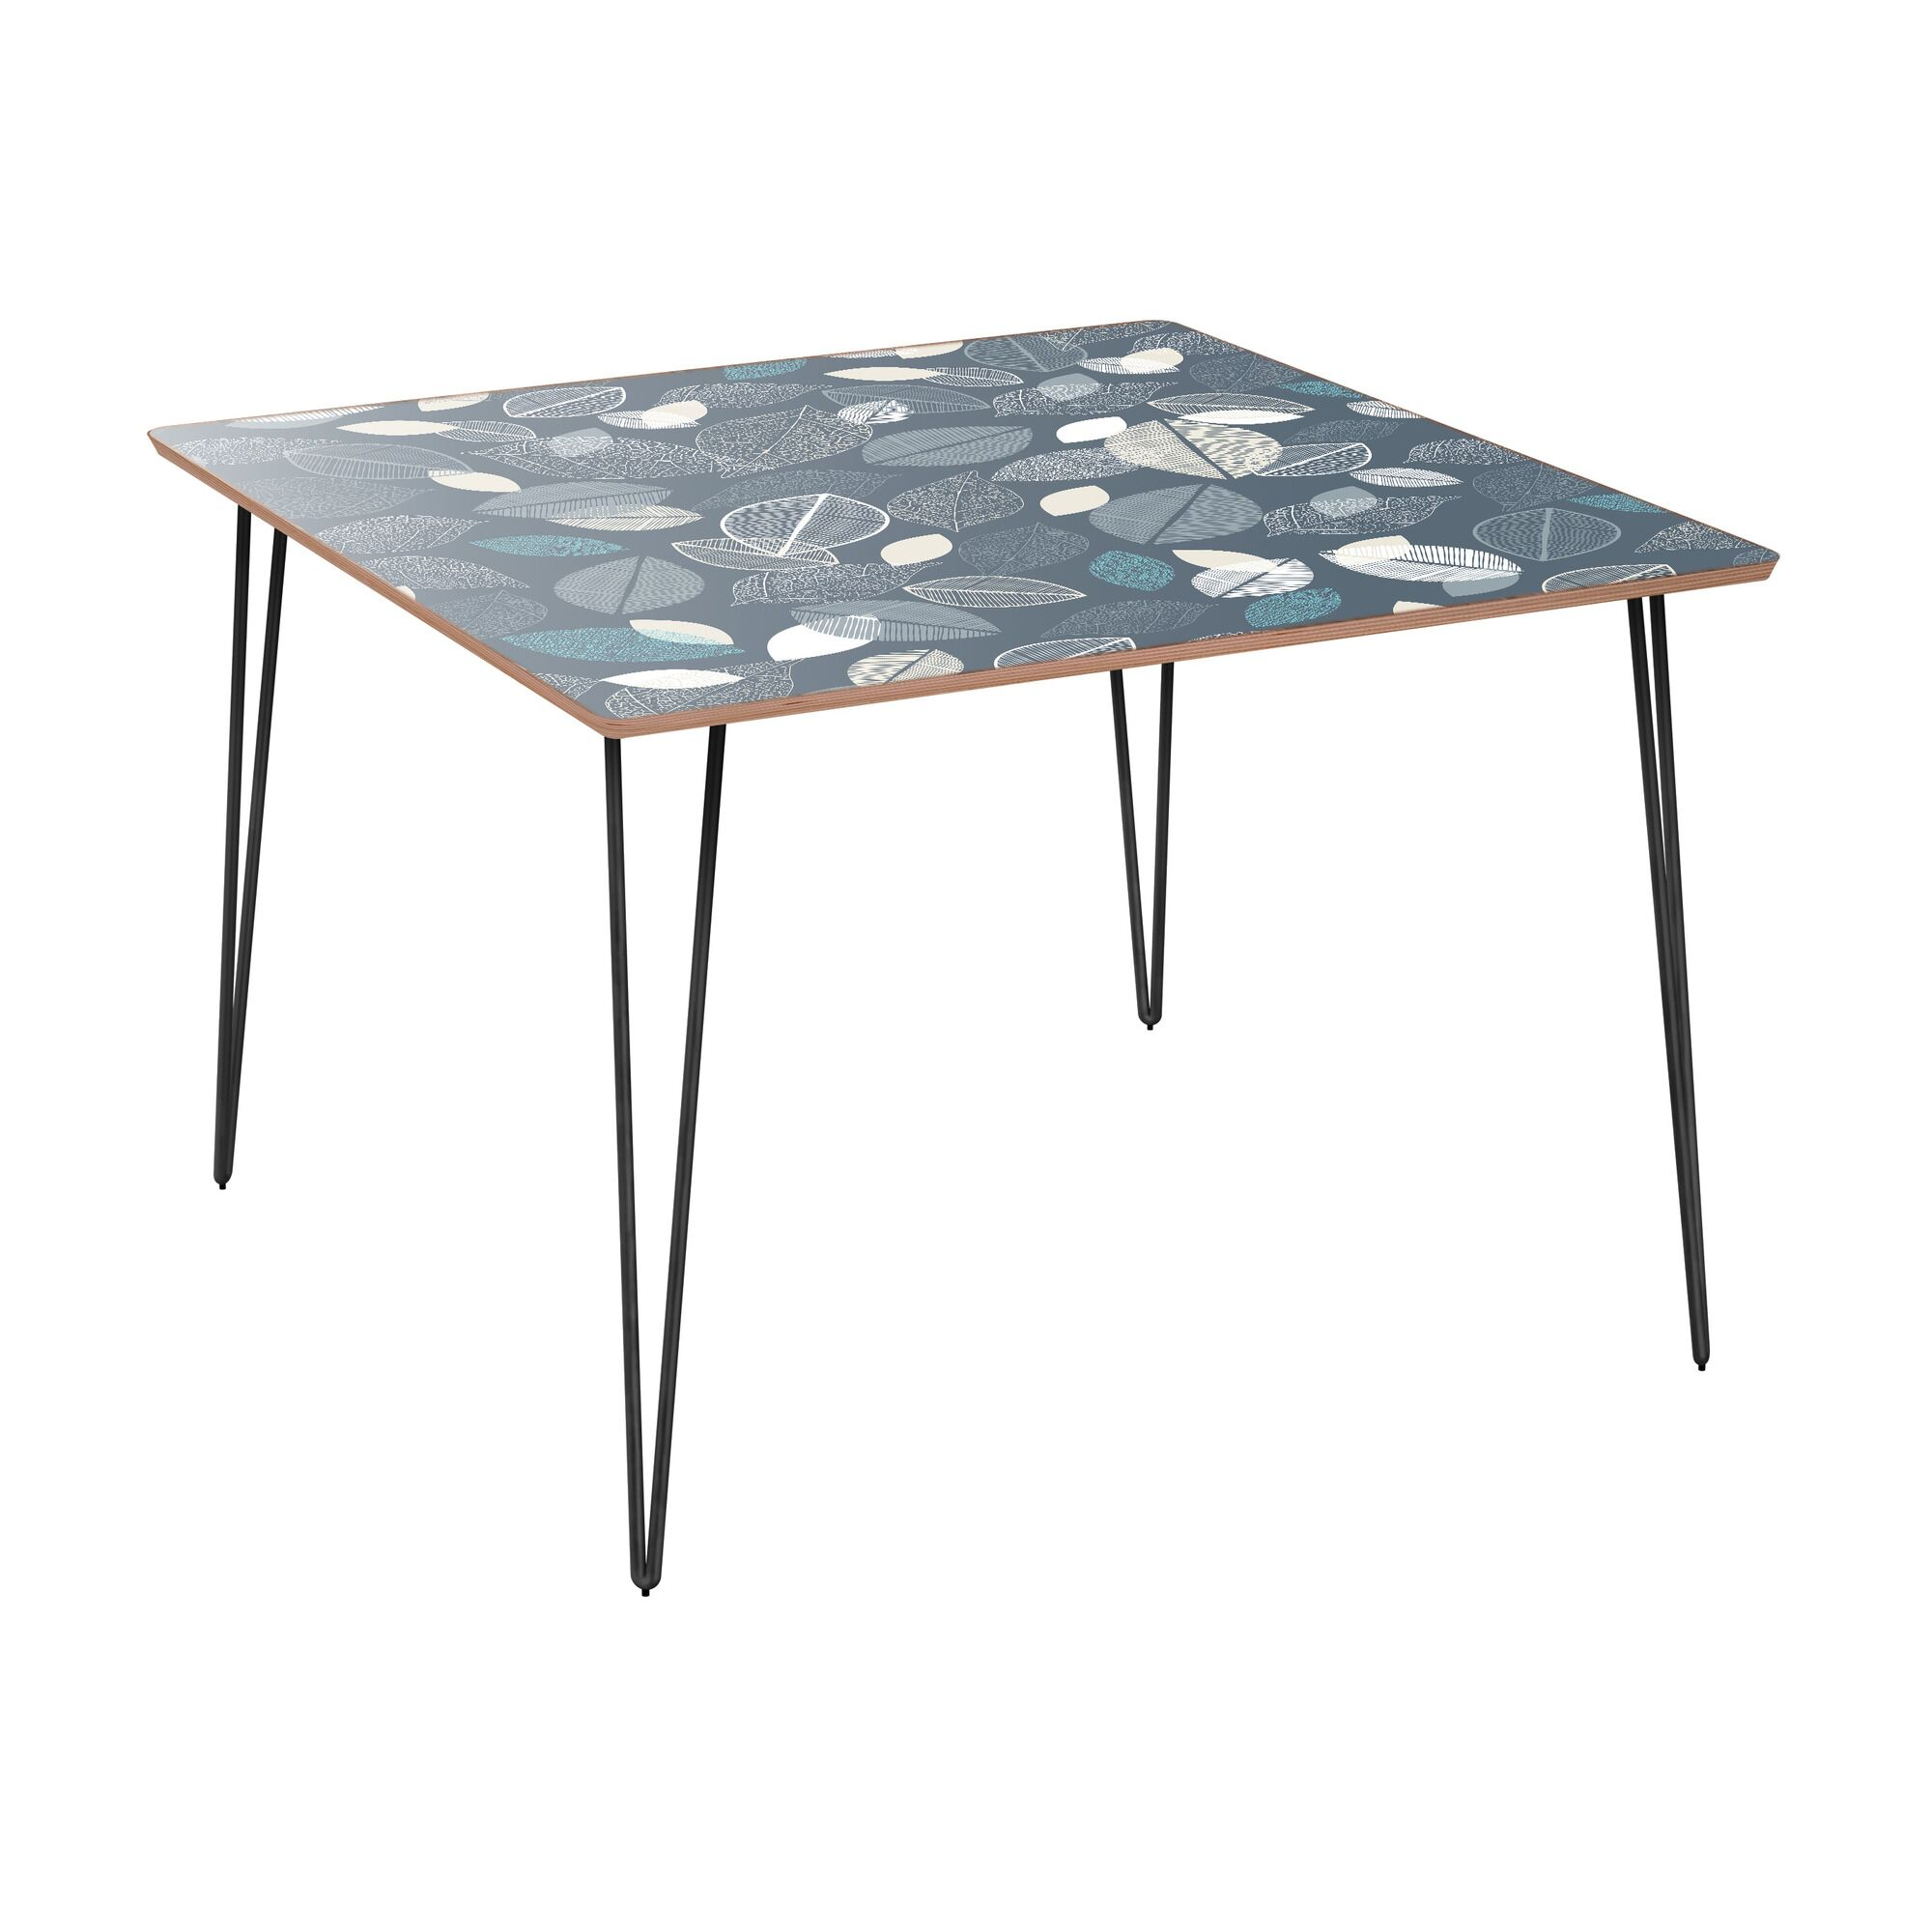 Coaxum Dining Table Table Base Color: Black, Table Top Boarder Color: Walnut, Table Top Color: Green/Brown